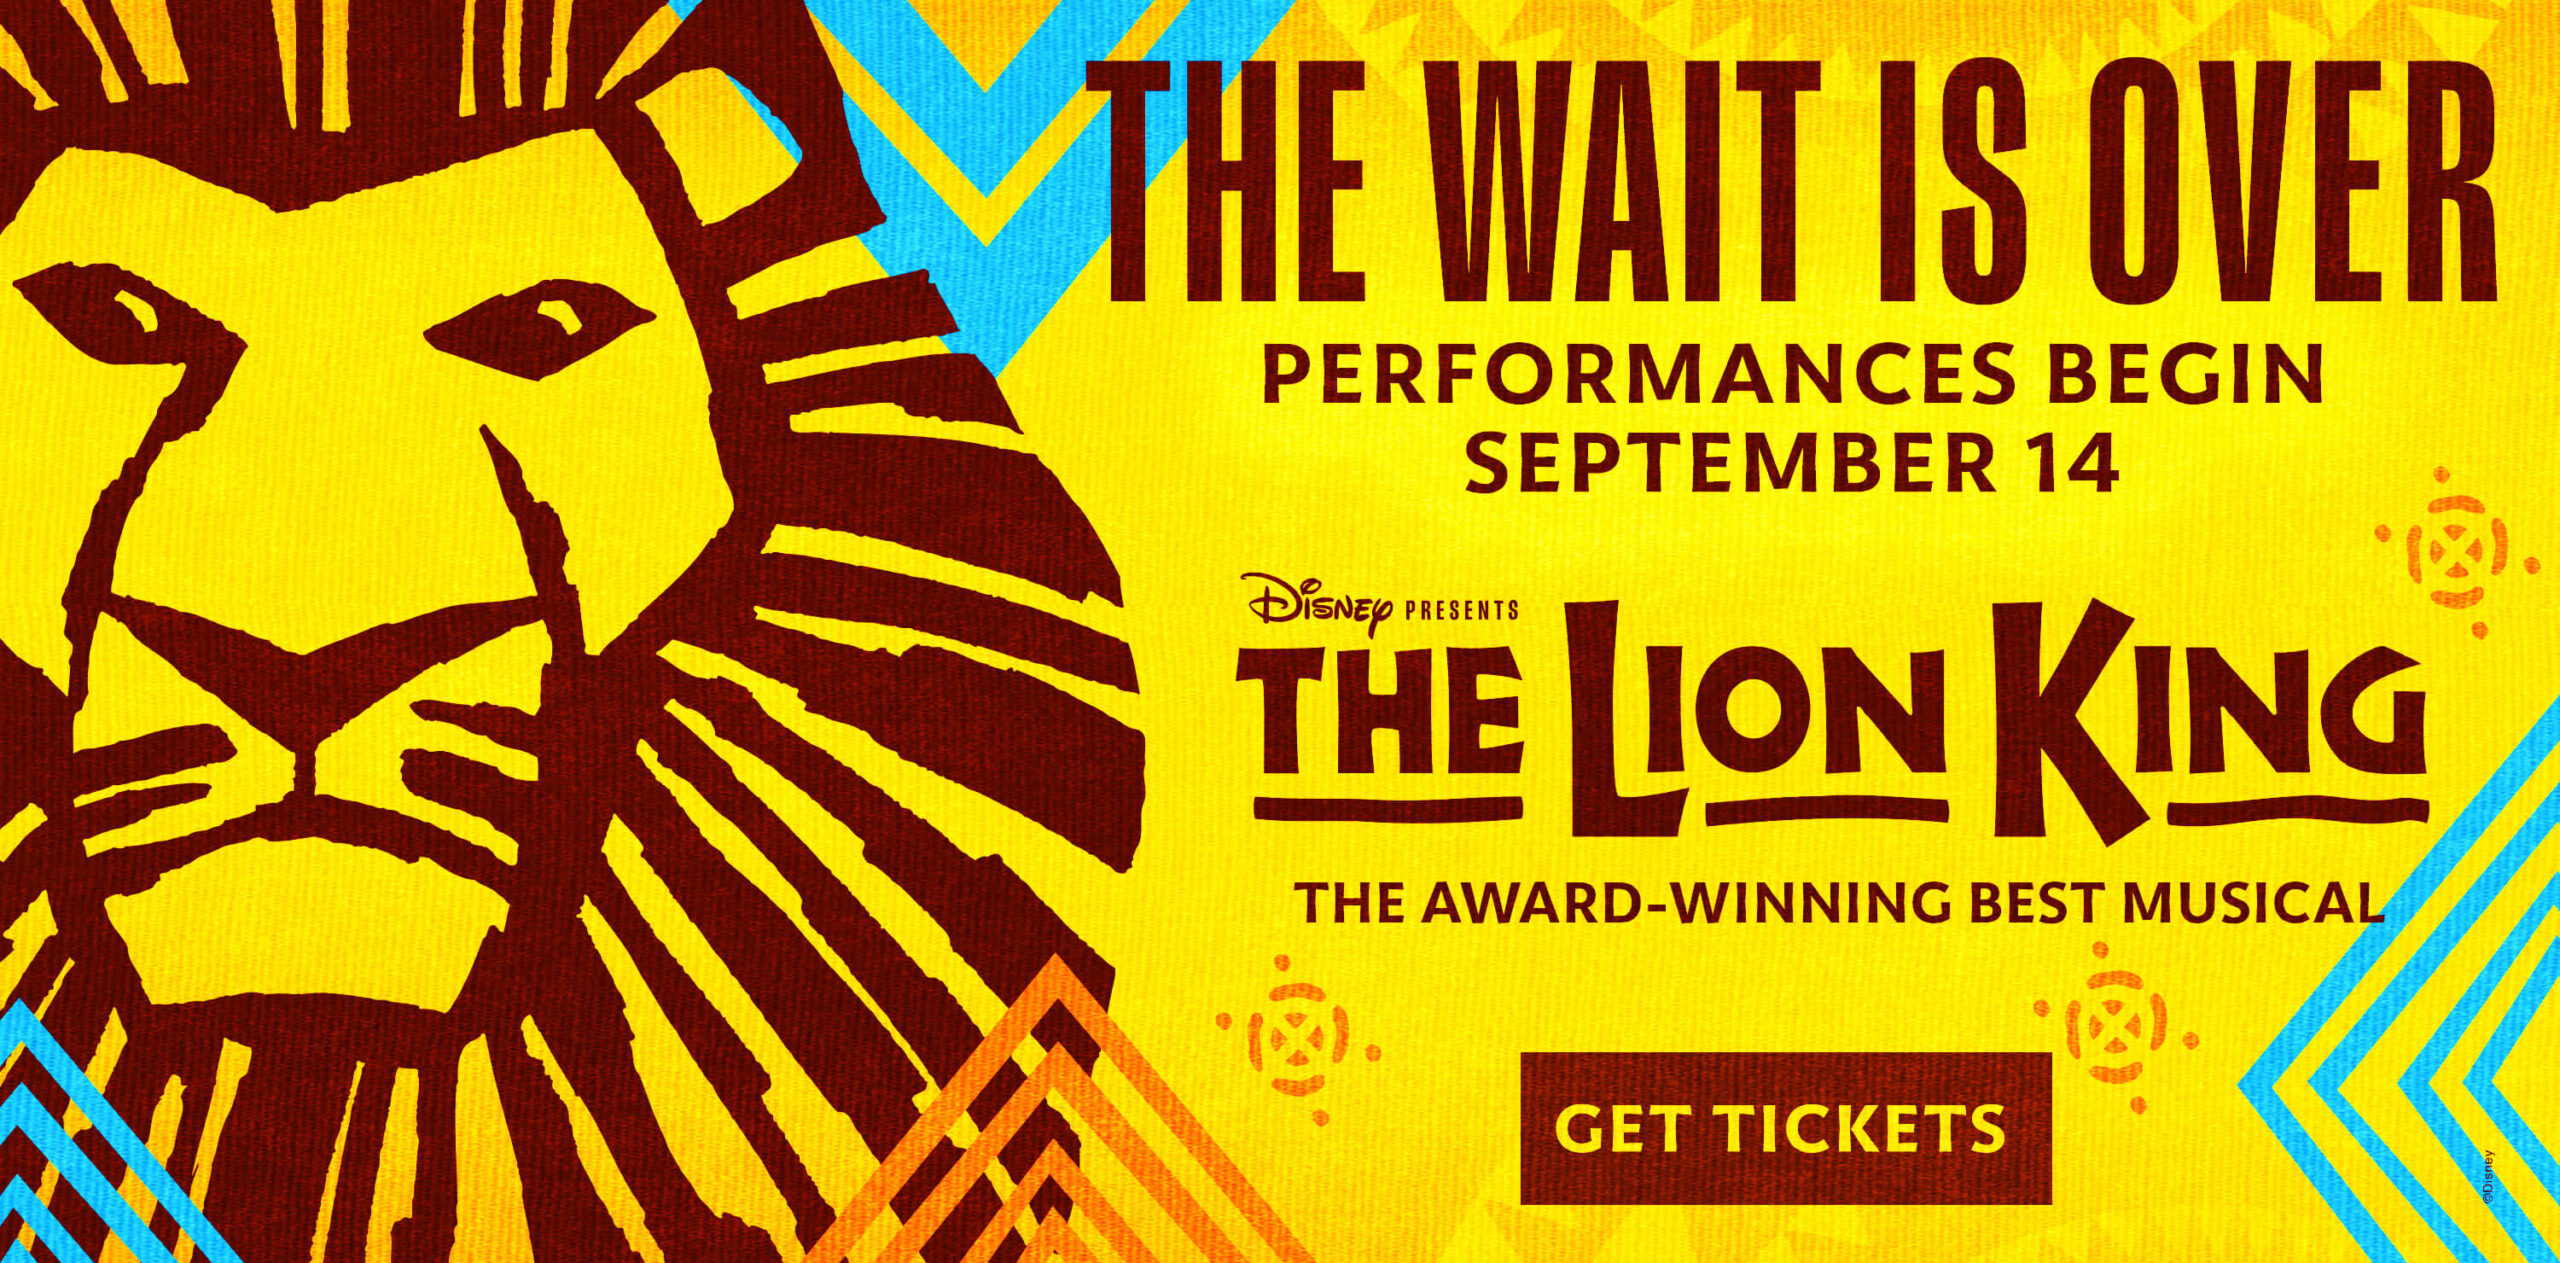 Disney THE LION KING - The Wait Is Over - Performances Begin September 14 - Get Tickets